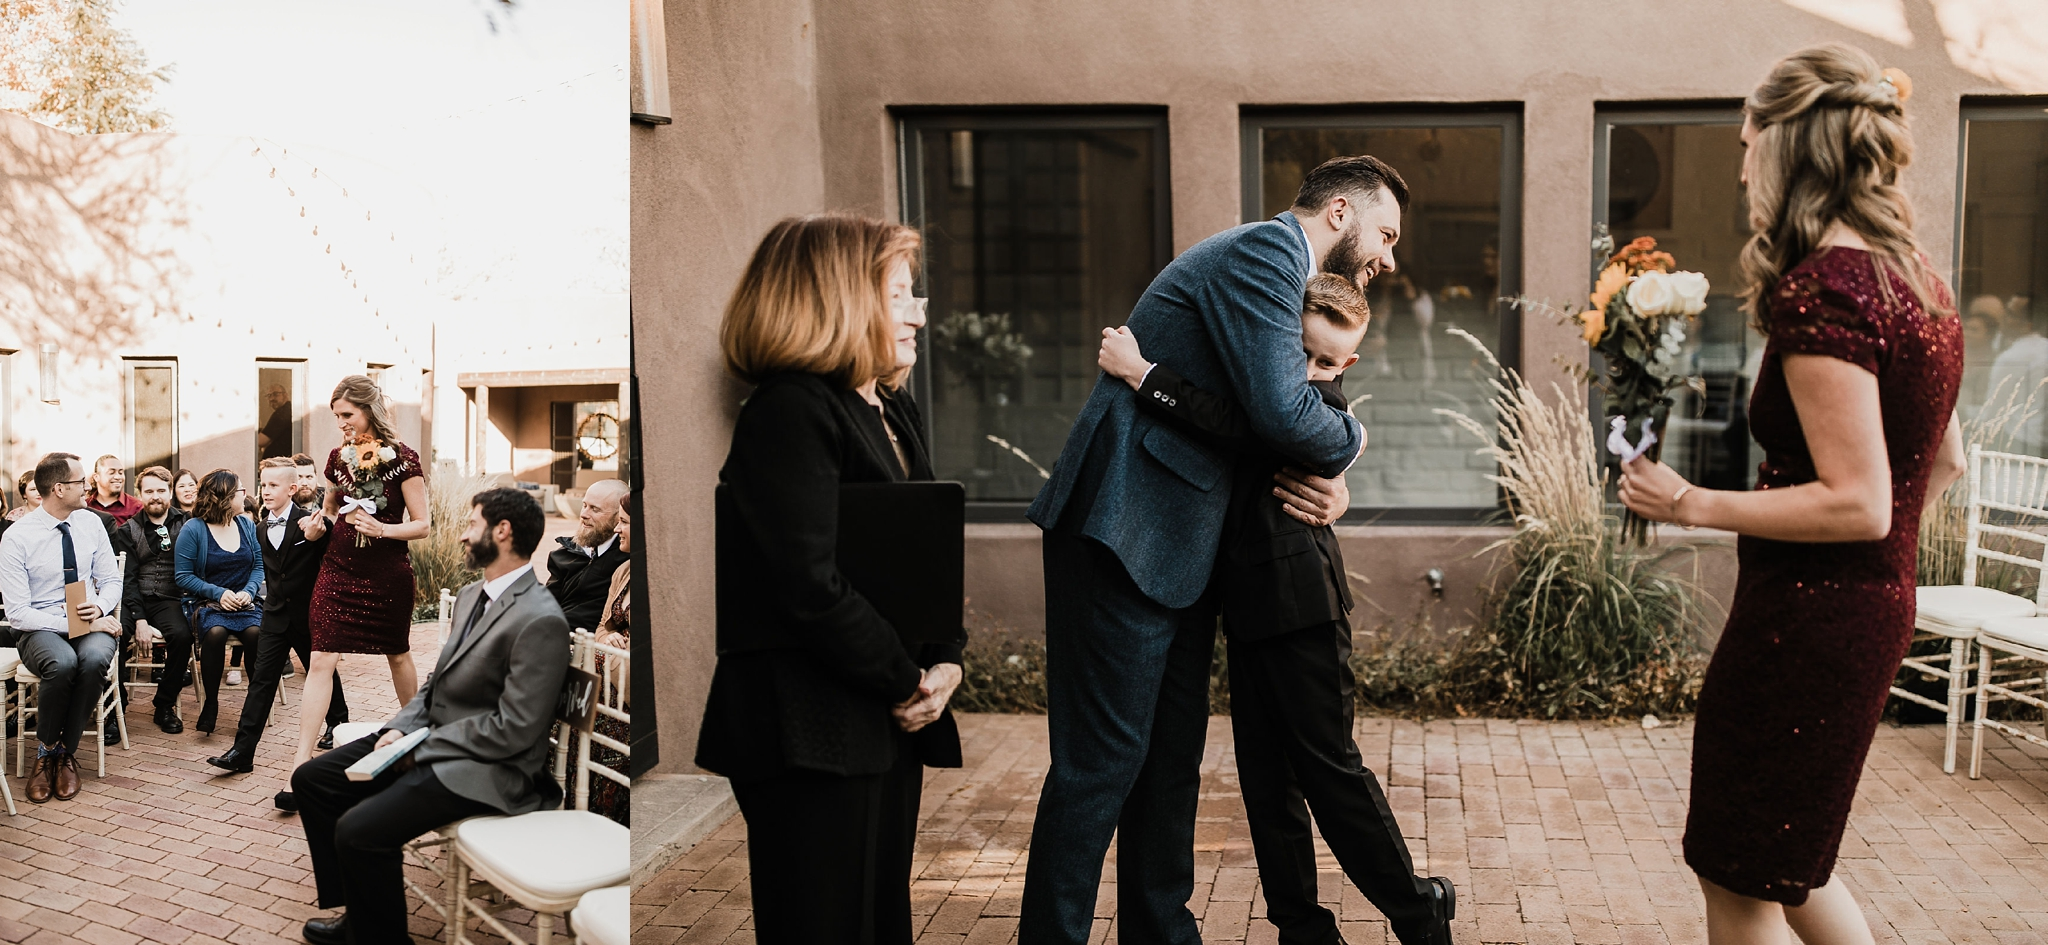 Alicia+lucia+photography+-+albuquerque+wedding+photographer+-+santa+fe+wedding+photography+-+new+mexico+wedding+photographer+-+albuquerque+wedding+-+sarabande+bed+breakfast+-+bed+and+breakfast+wedding_0045.jpg